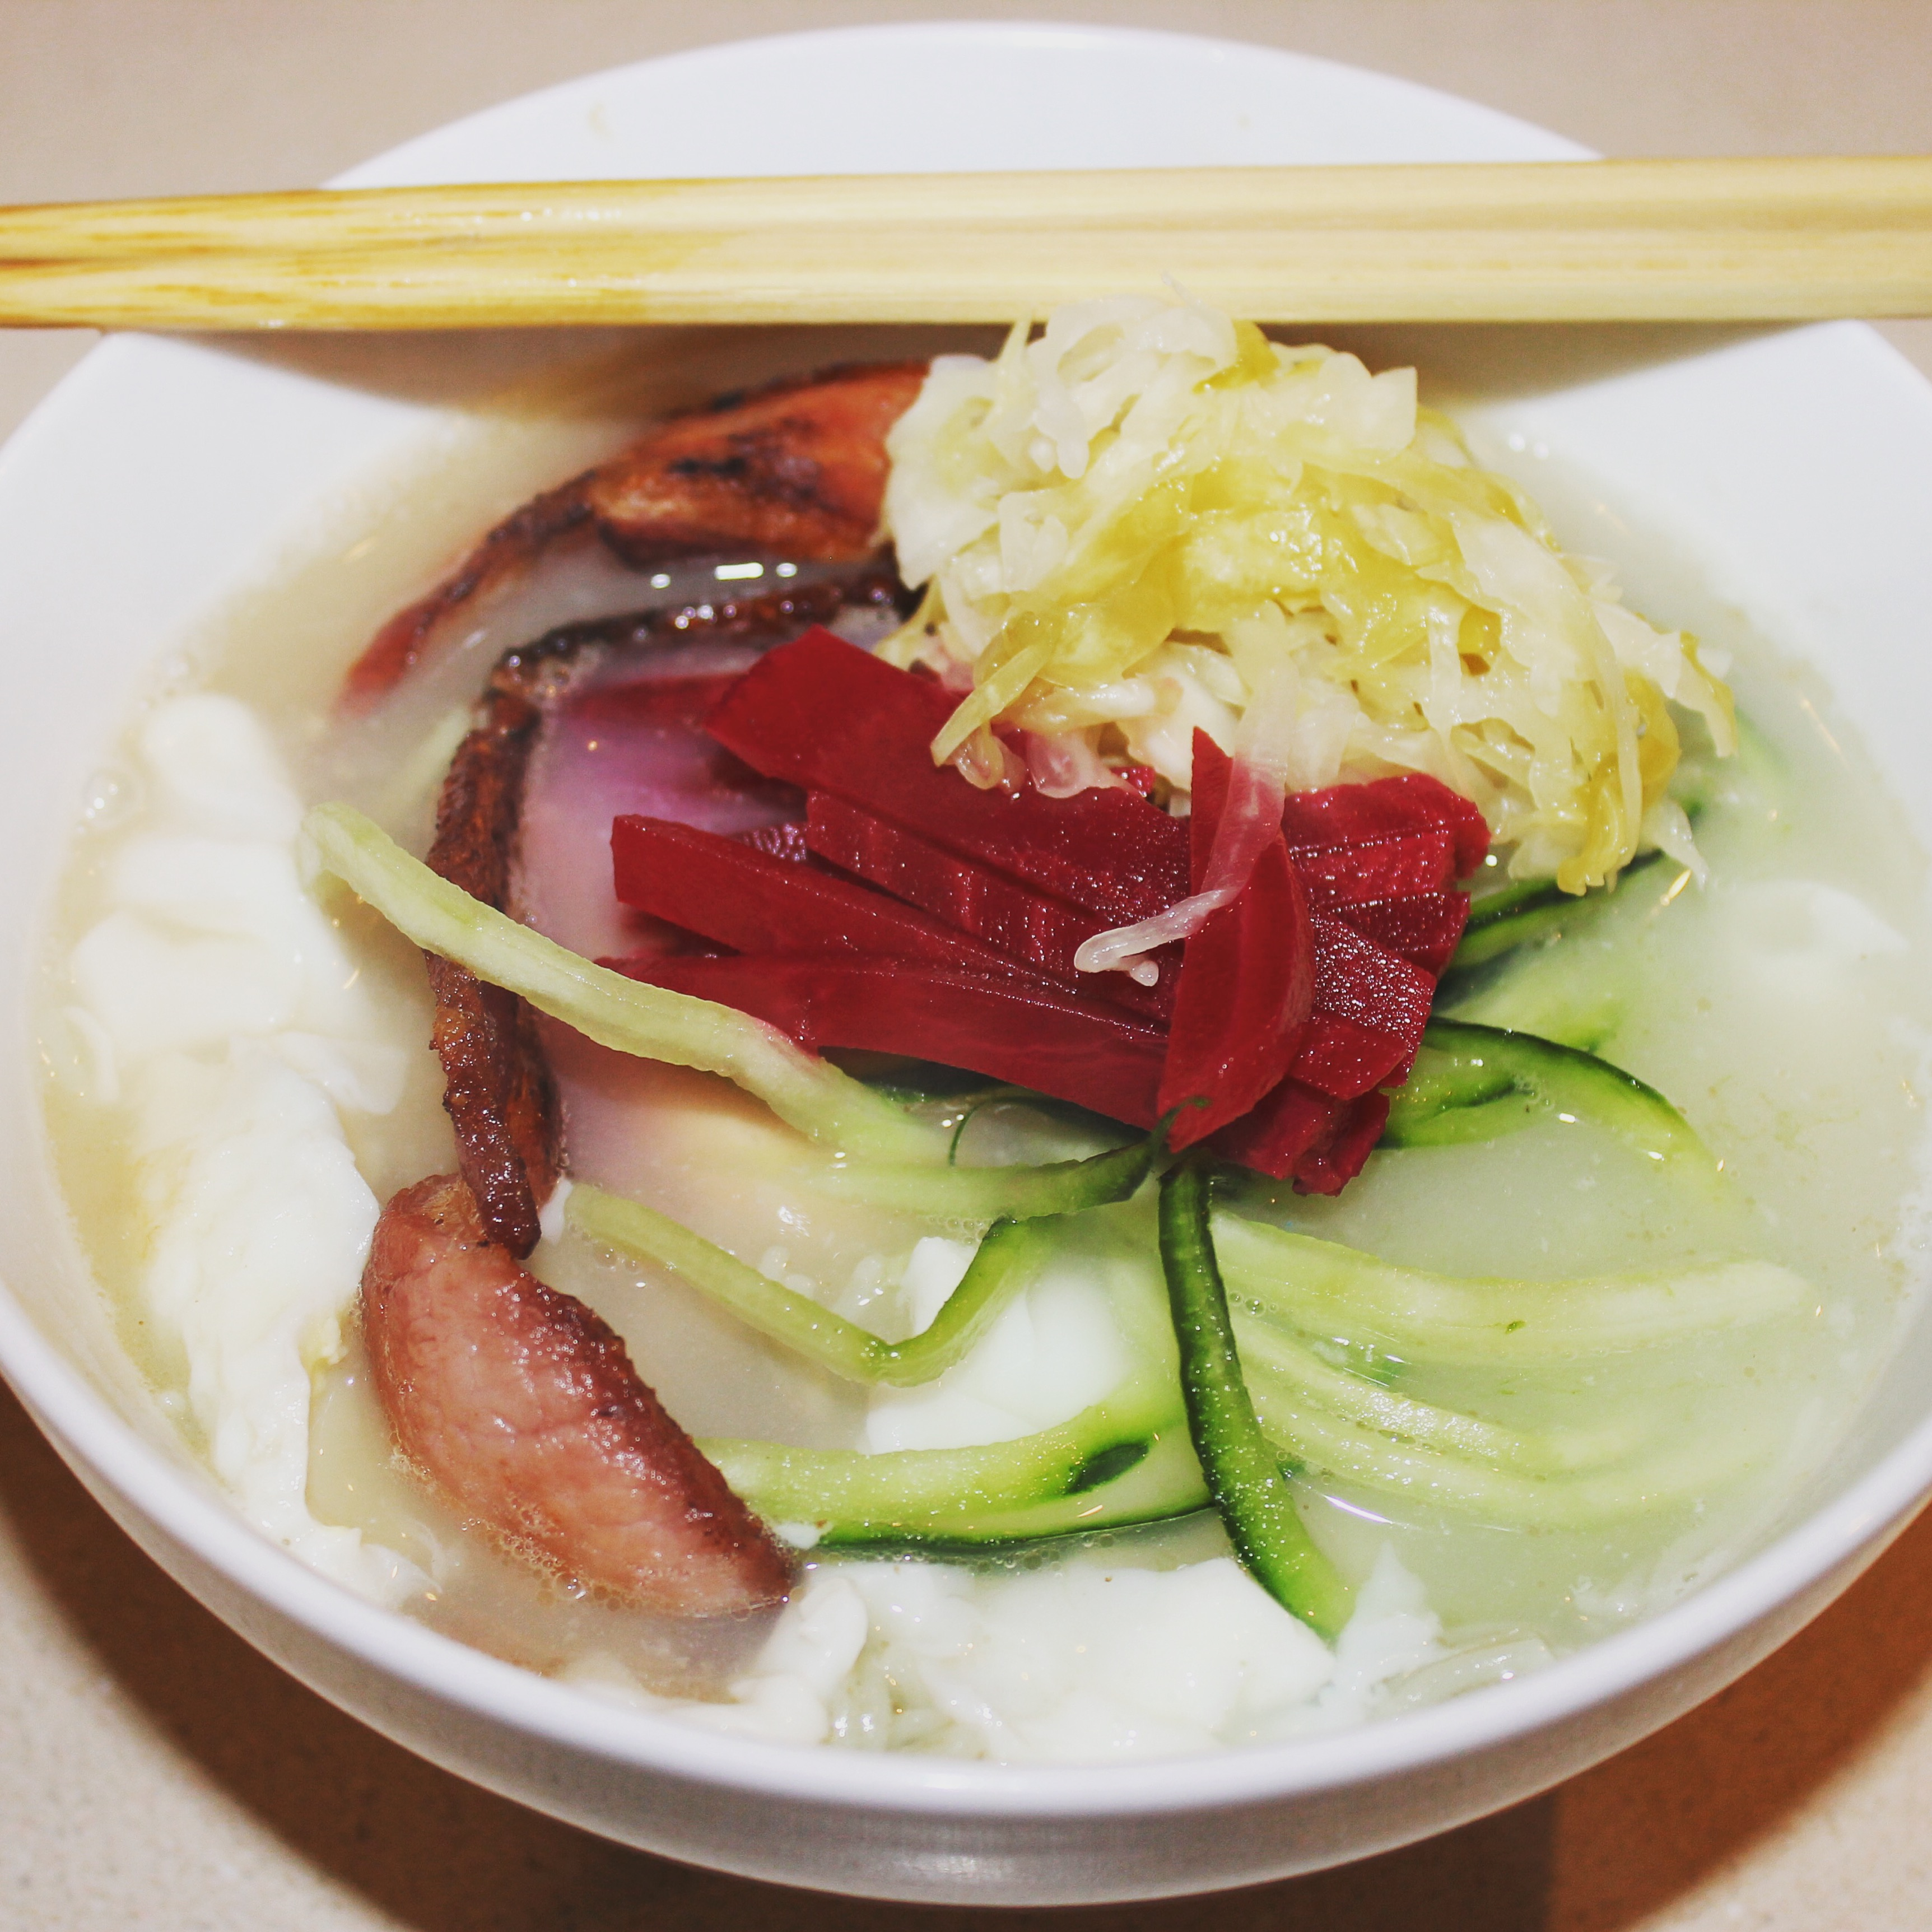 White bowl with noodles, vegetable, beets, bacon, and sauerkraut, with a pair of chopsticks across the top. Photo by Imei Hsu.